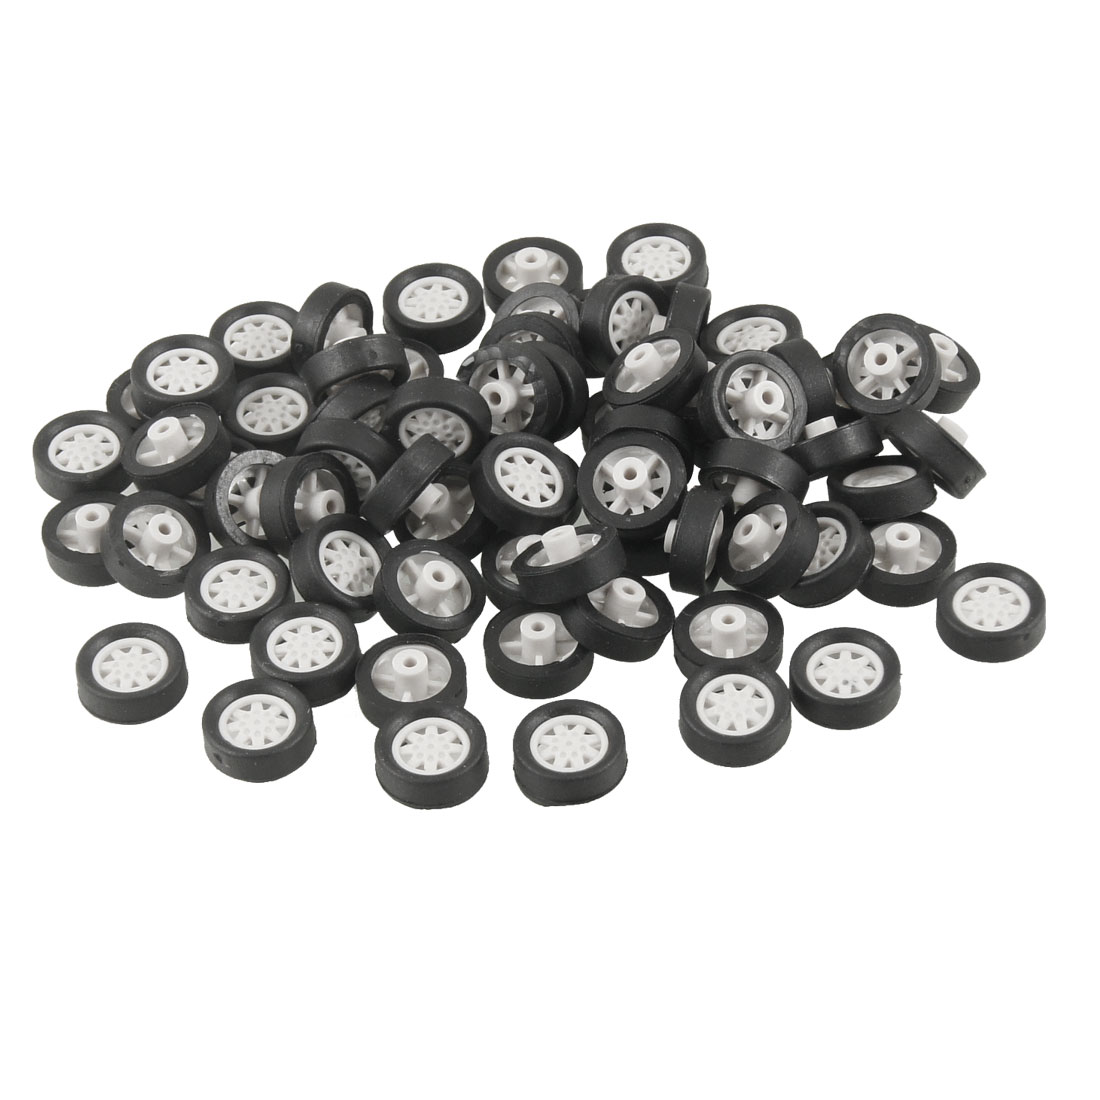 70 Pcs Repairing Part 11mm x 3mm Car Truck Vehicles Toy Wheels